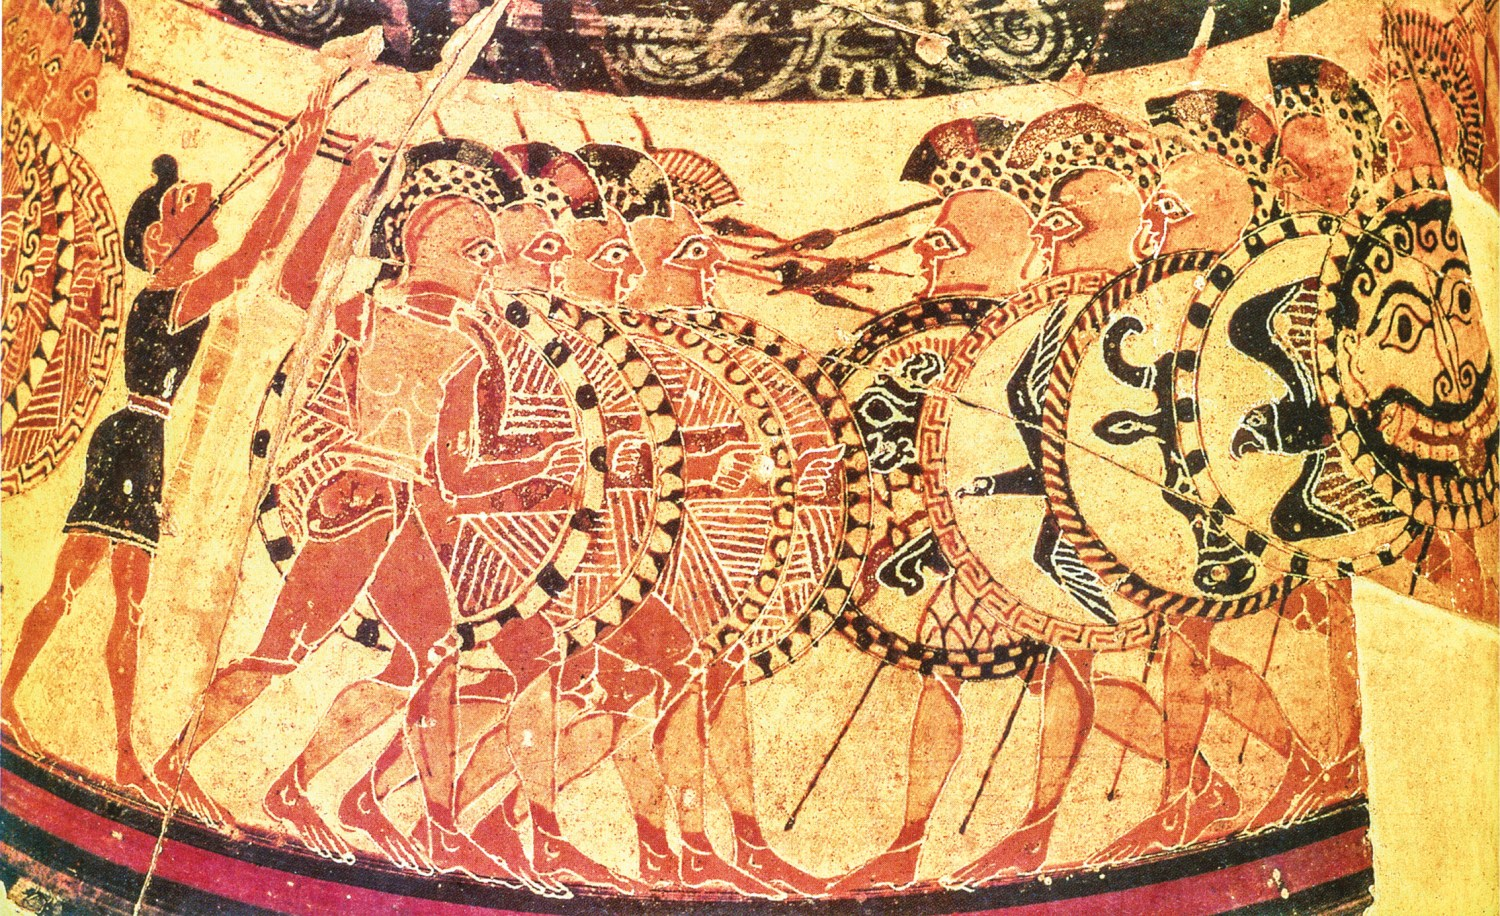 Above The famous Chigi Vase representation of two hoplite phalanxes in frontal collision on the battlefield. left Although depicting two mythic heroes fighting one another on the battlefield, this red- figure vase painting is nonetheless a highly realistic portrayal of Greek heavy infantrymen at the time of the Persian Wars.